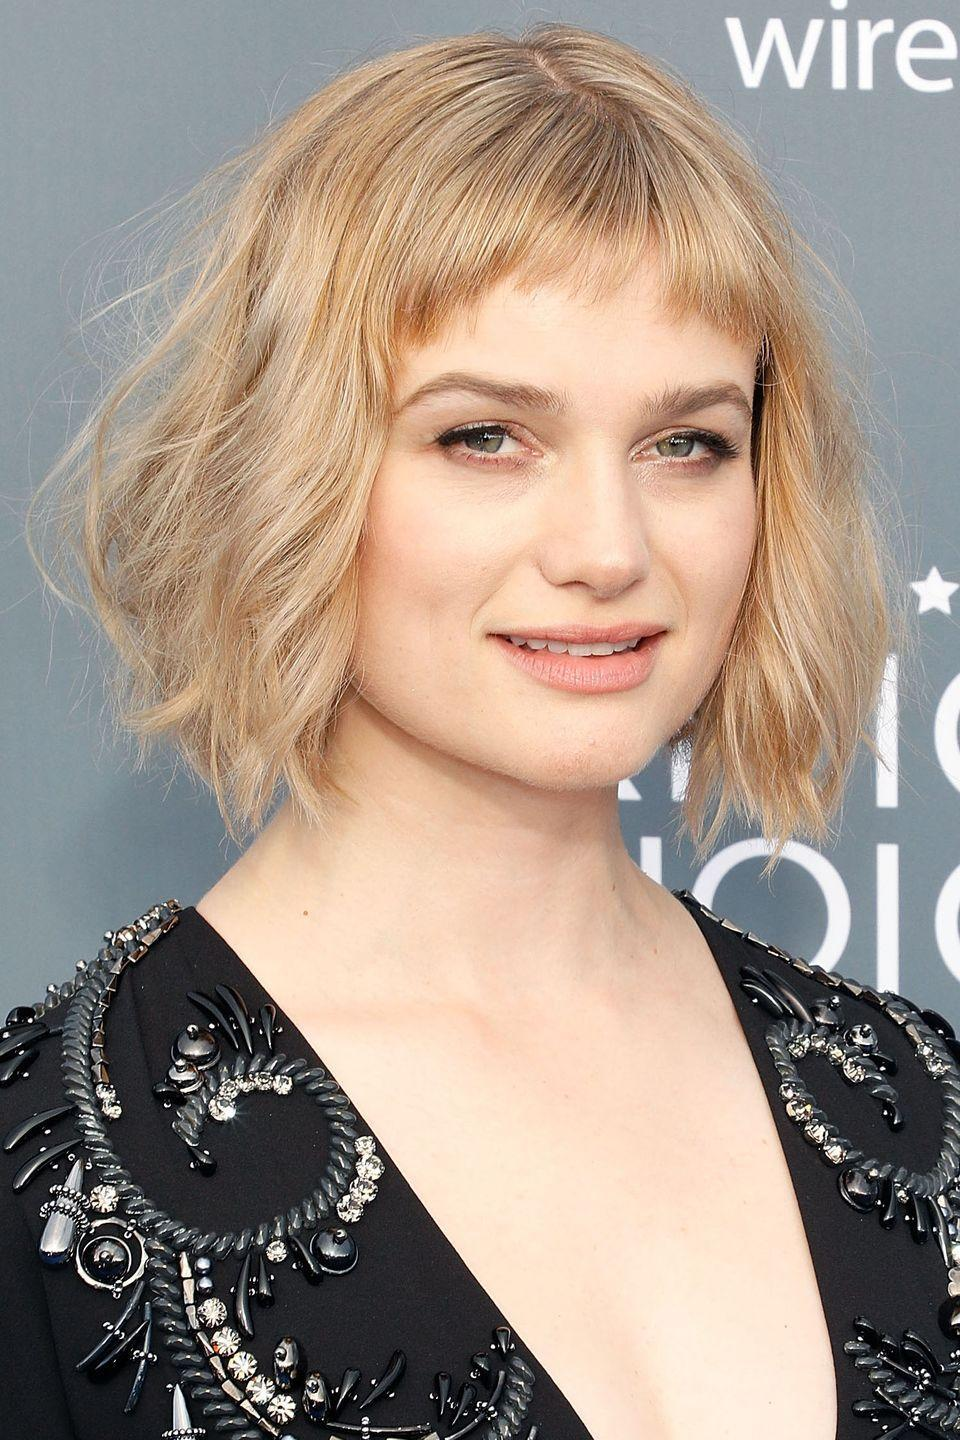 """<p>The choppy nature of Alison Sudol's short bangs works perfectly with her wavy, <a href=""""https://www.goodhousekeeping.com/beauty/hair/g1813/celebrity-hairstyles-bobs/"""" rel=""""nofollow noopener"""" target=""""_blank"""" data-ylk=""""slk:angled bob"""" class=""""link rapid-noclick-resp"""">angled bob</a>.</p>"""